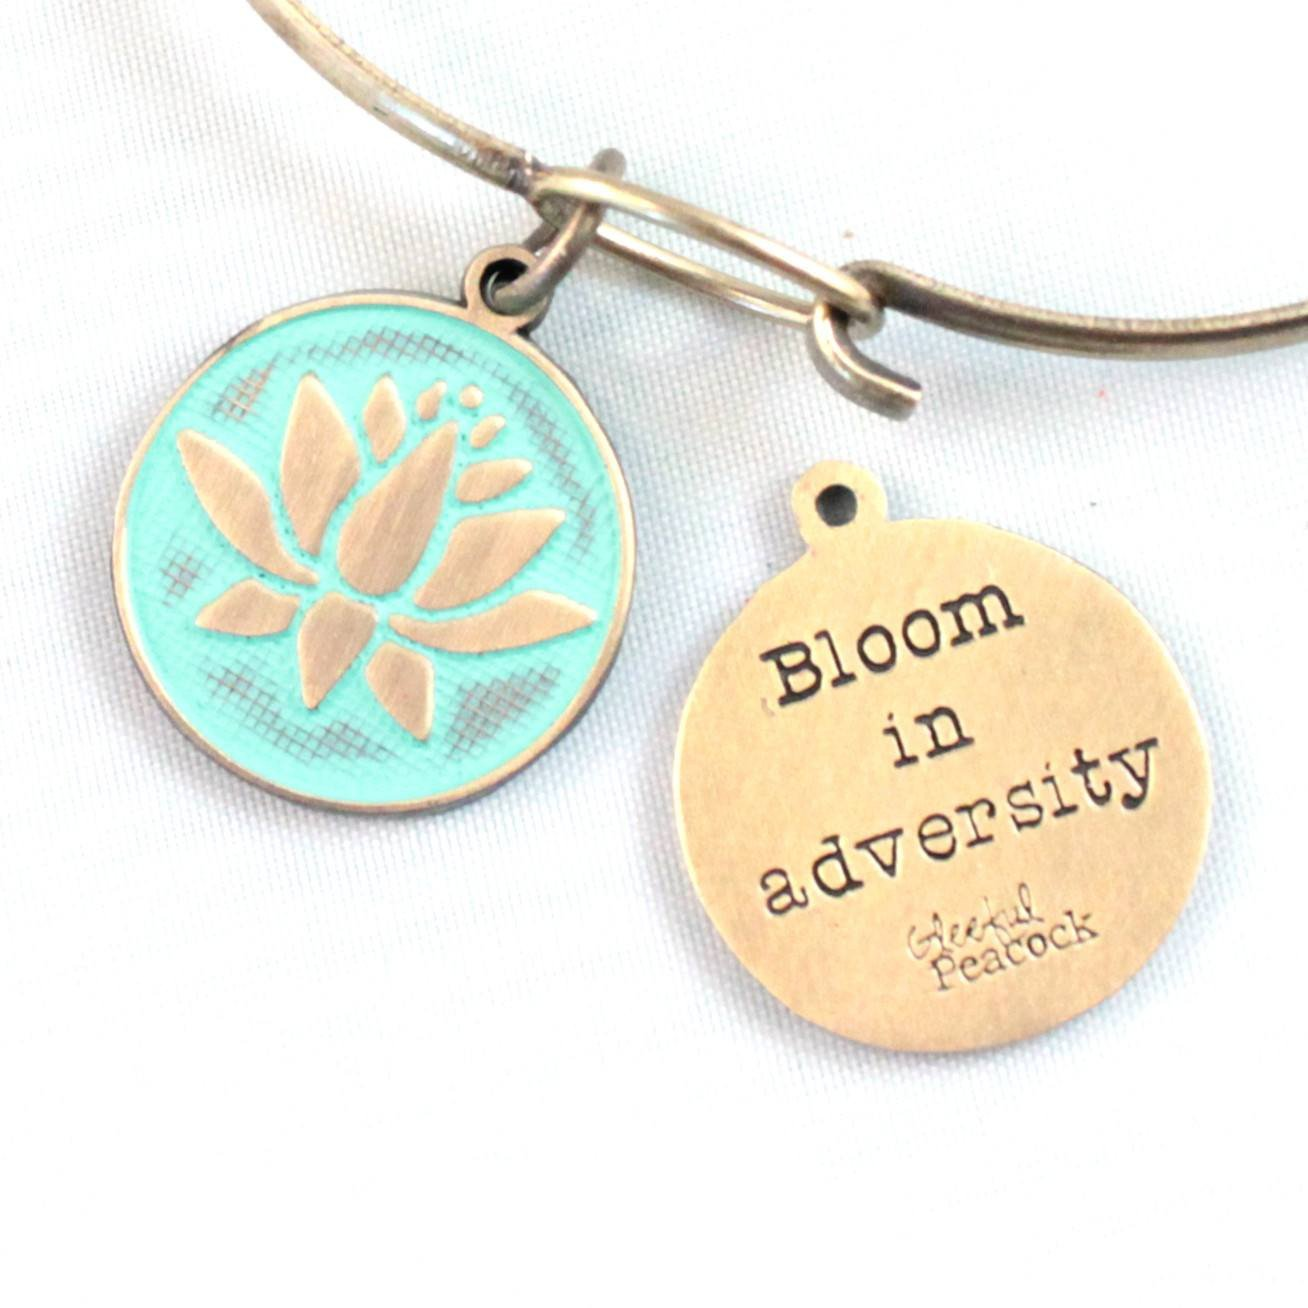 Bloom In Adversity Token Charm Bracelet, Necklace, or Charm Only